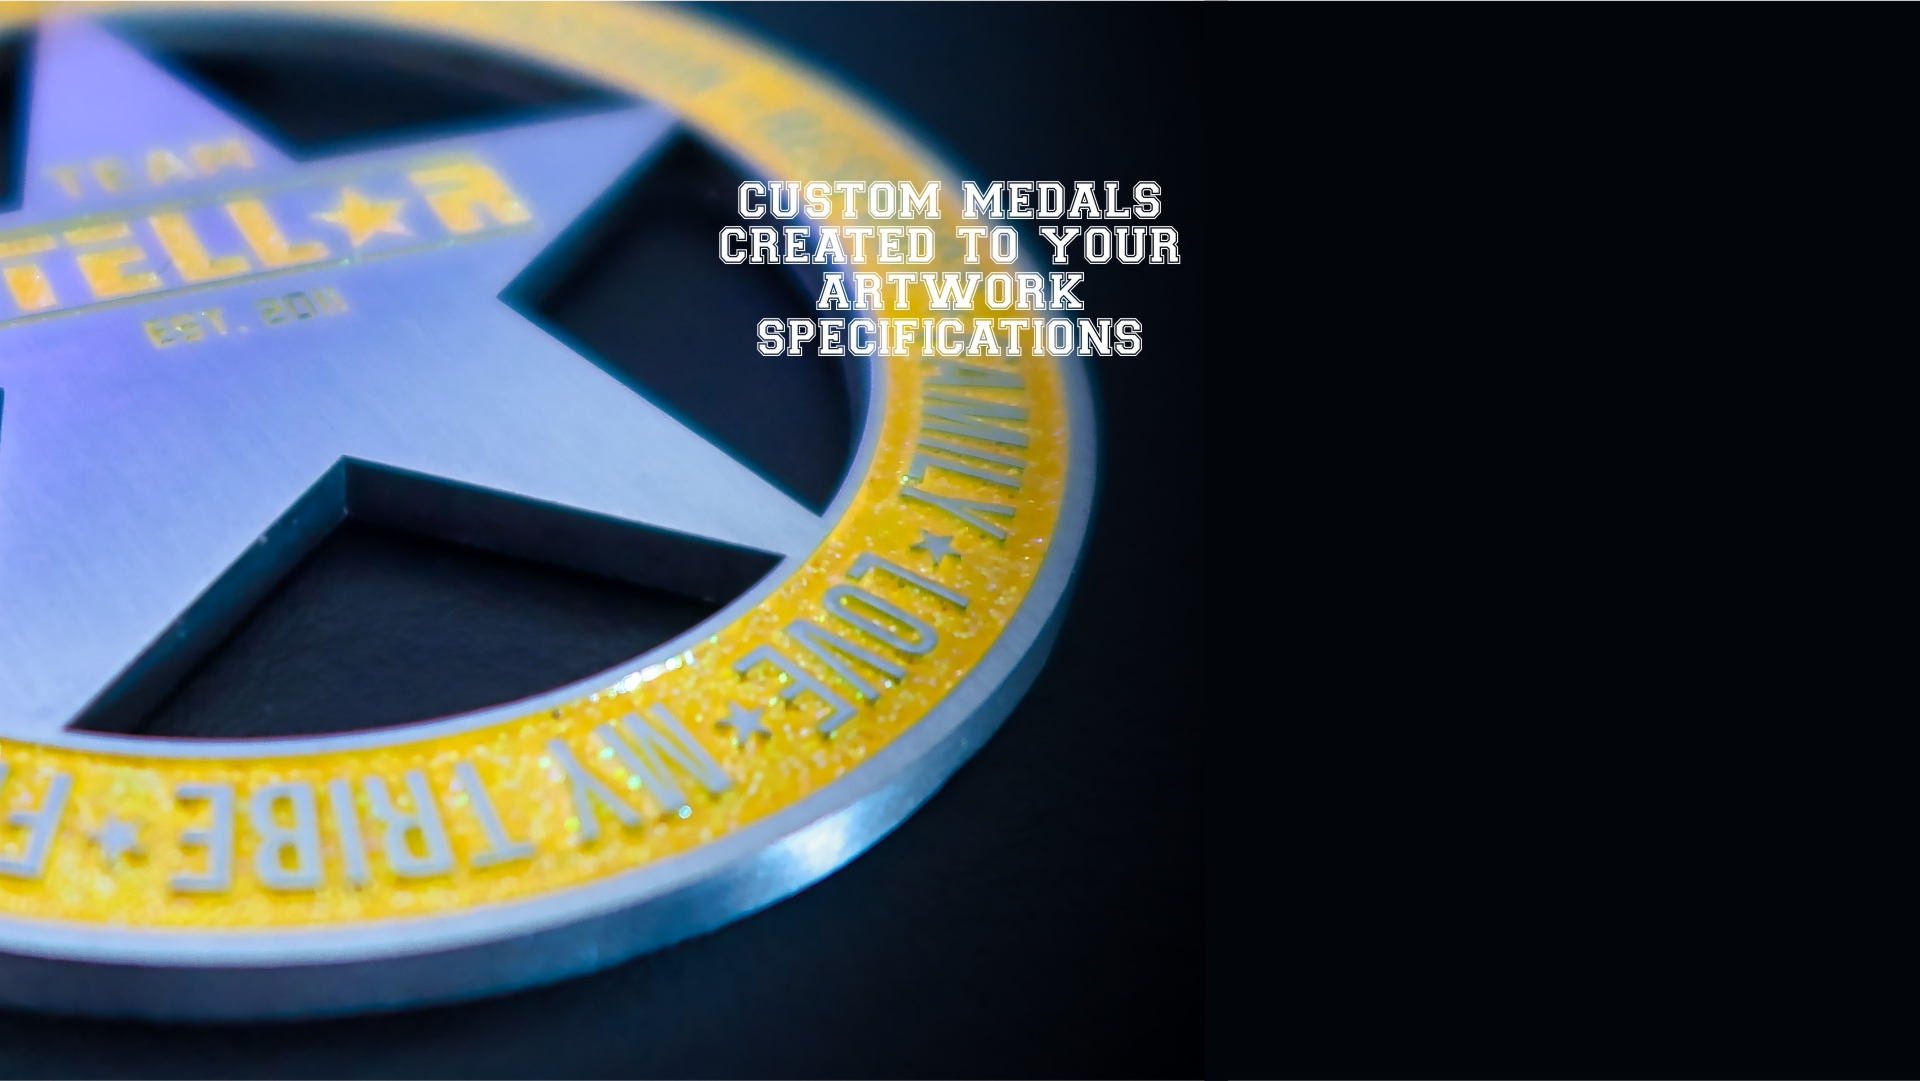 Stellar Medals Custom Created to your Artwork Specifications